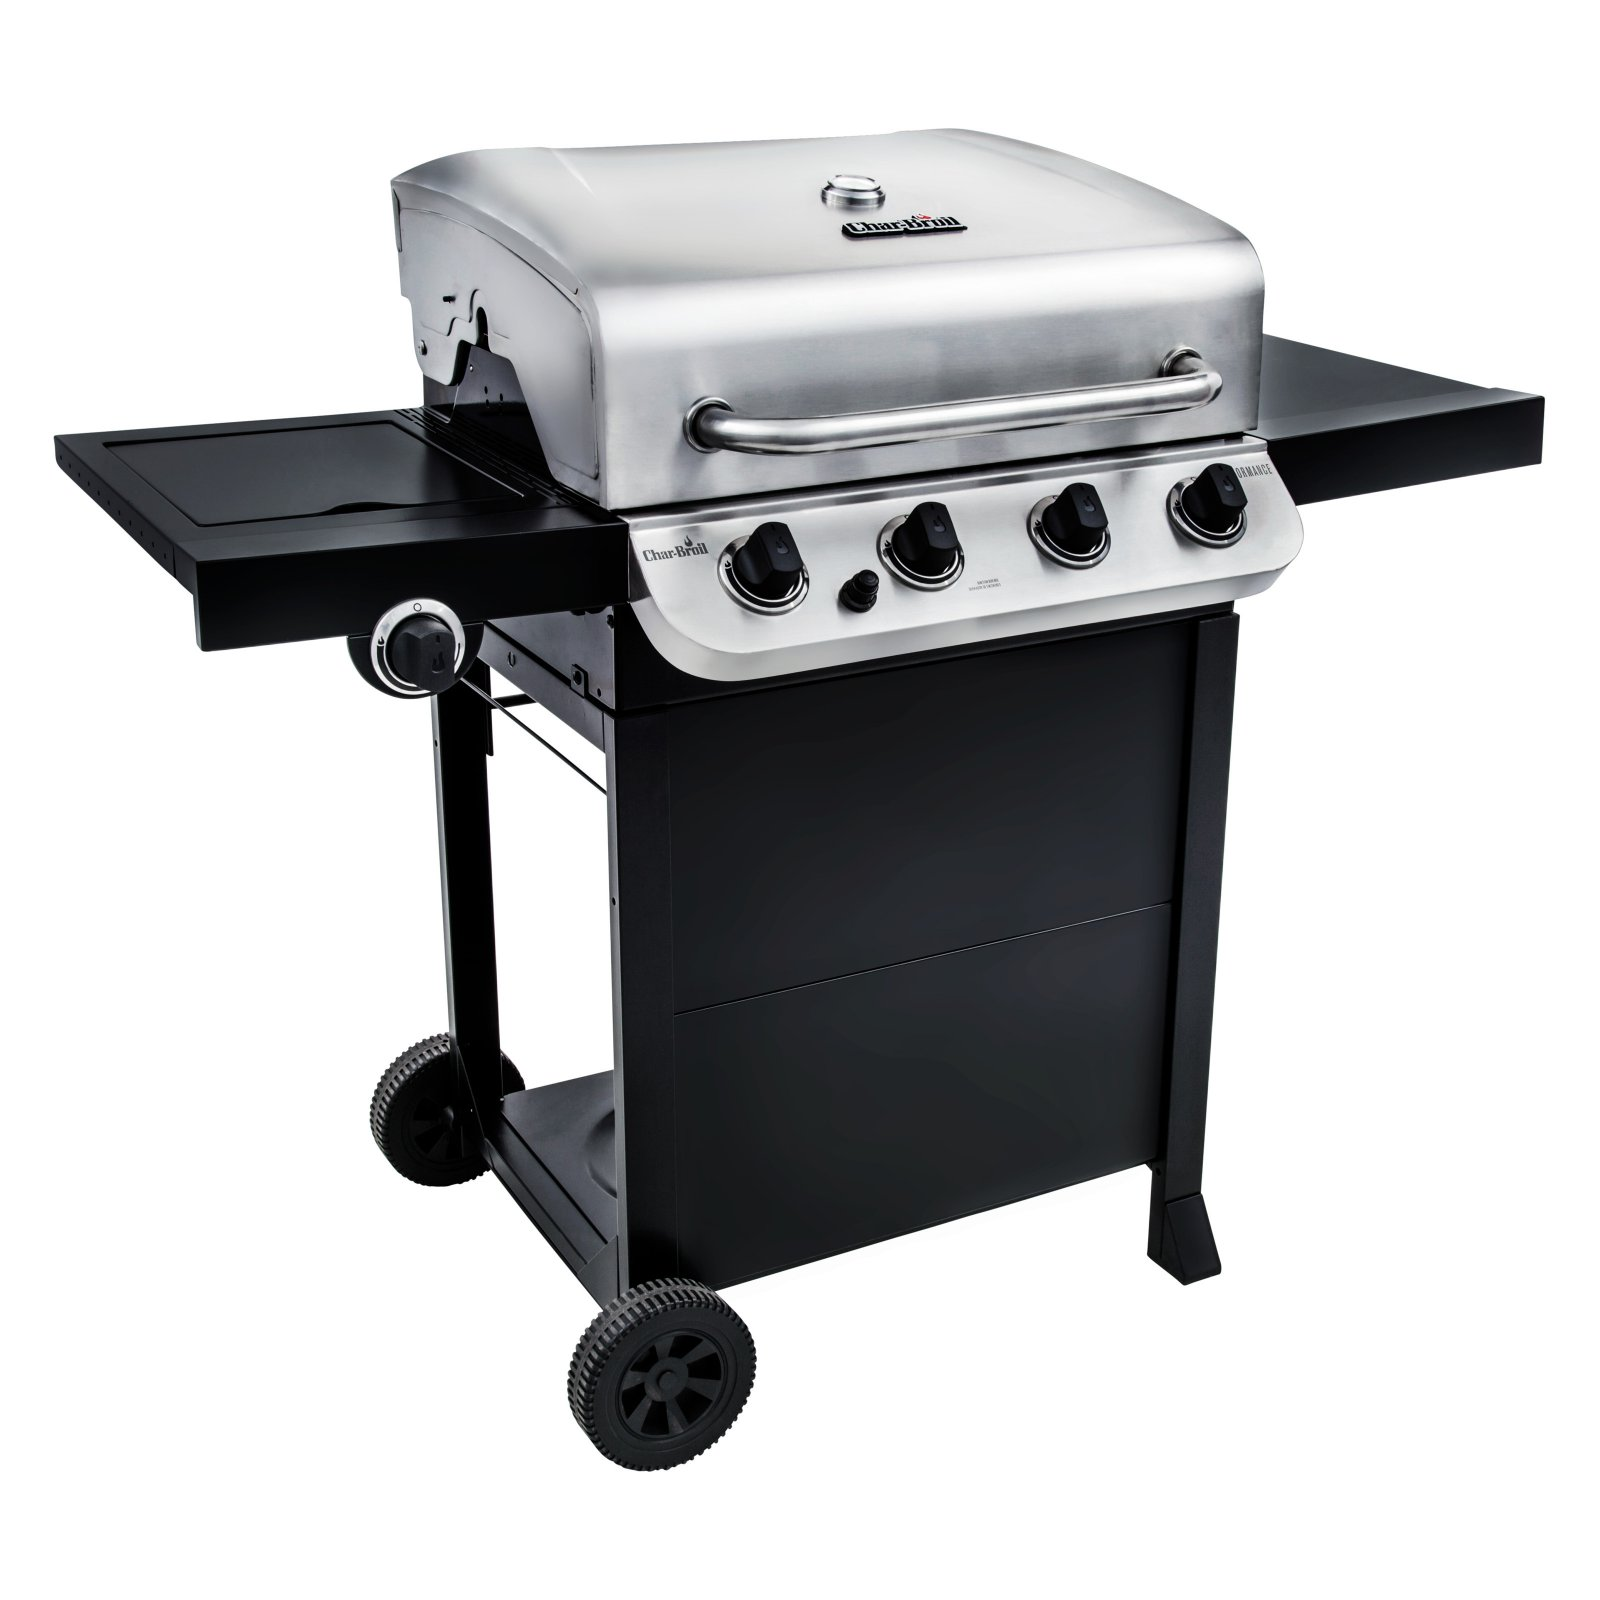 Char-Broil Performance 4-Burner Cart 475